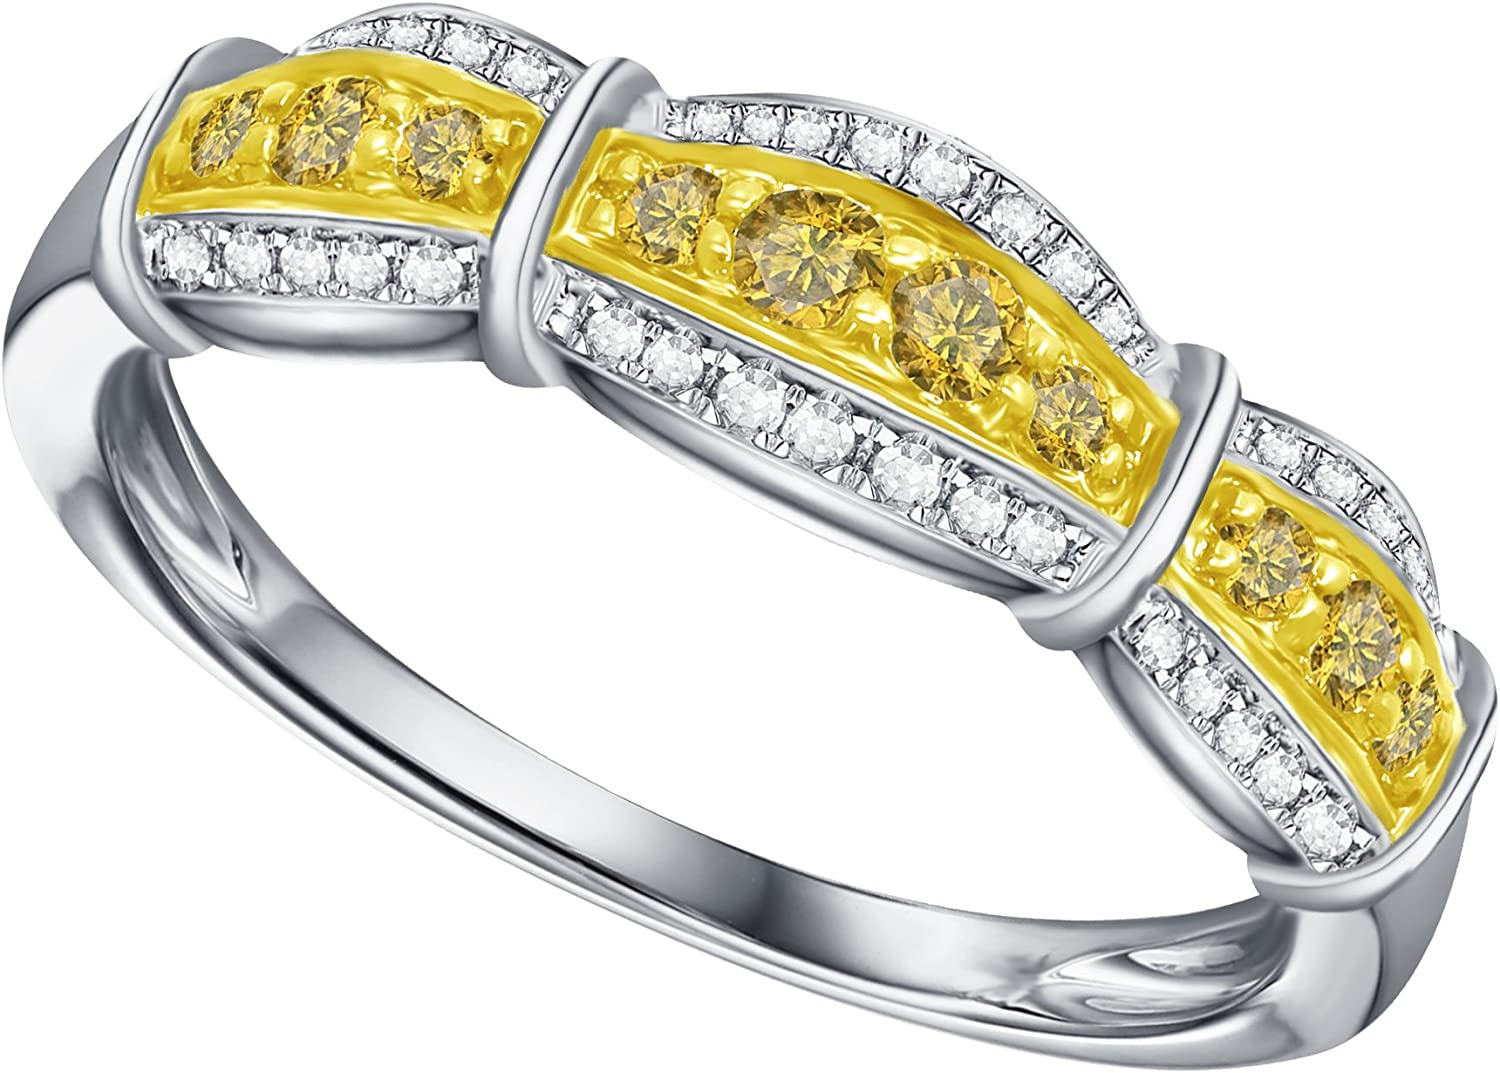 Prism Jewel 0.30Ct Round Yellow Diamond With Diamond Anniversary Ring